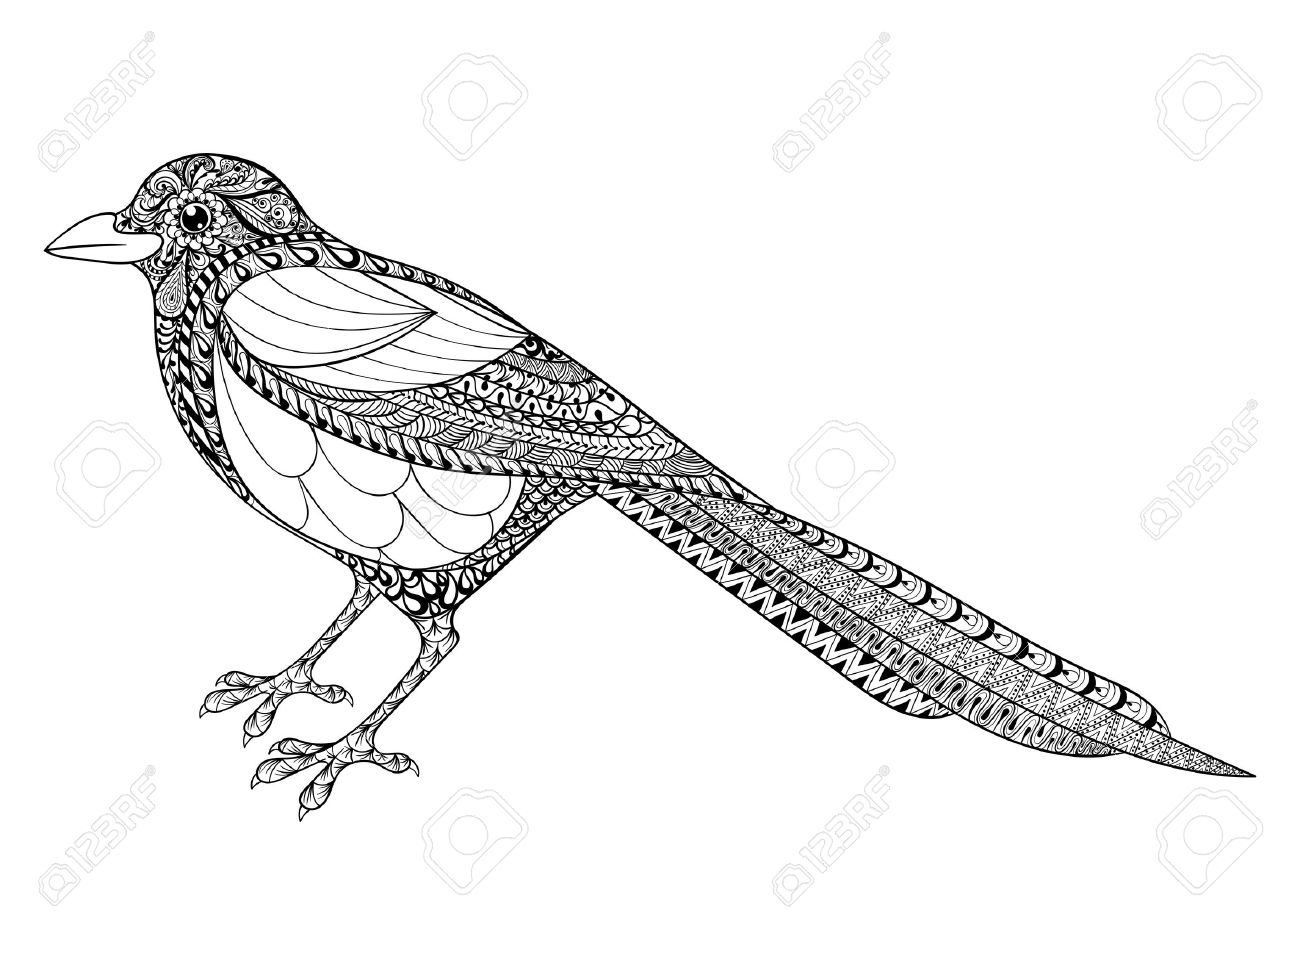 Hand Drawn Magpie Illustration For Antistress Coloring Page With High  Details Isolated On White Background,